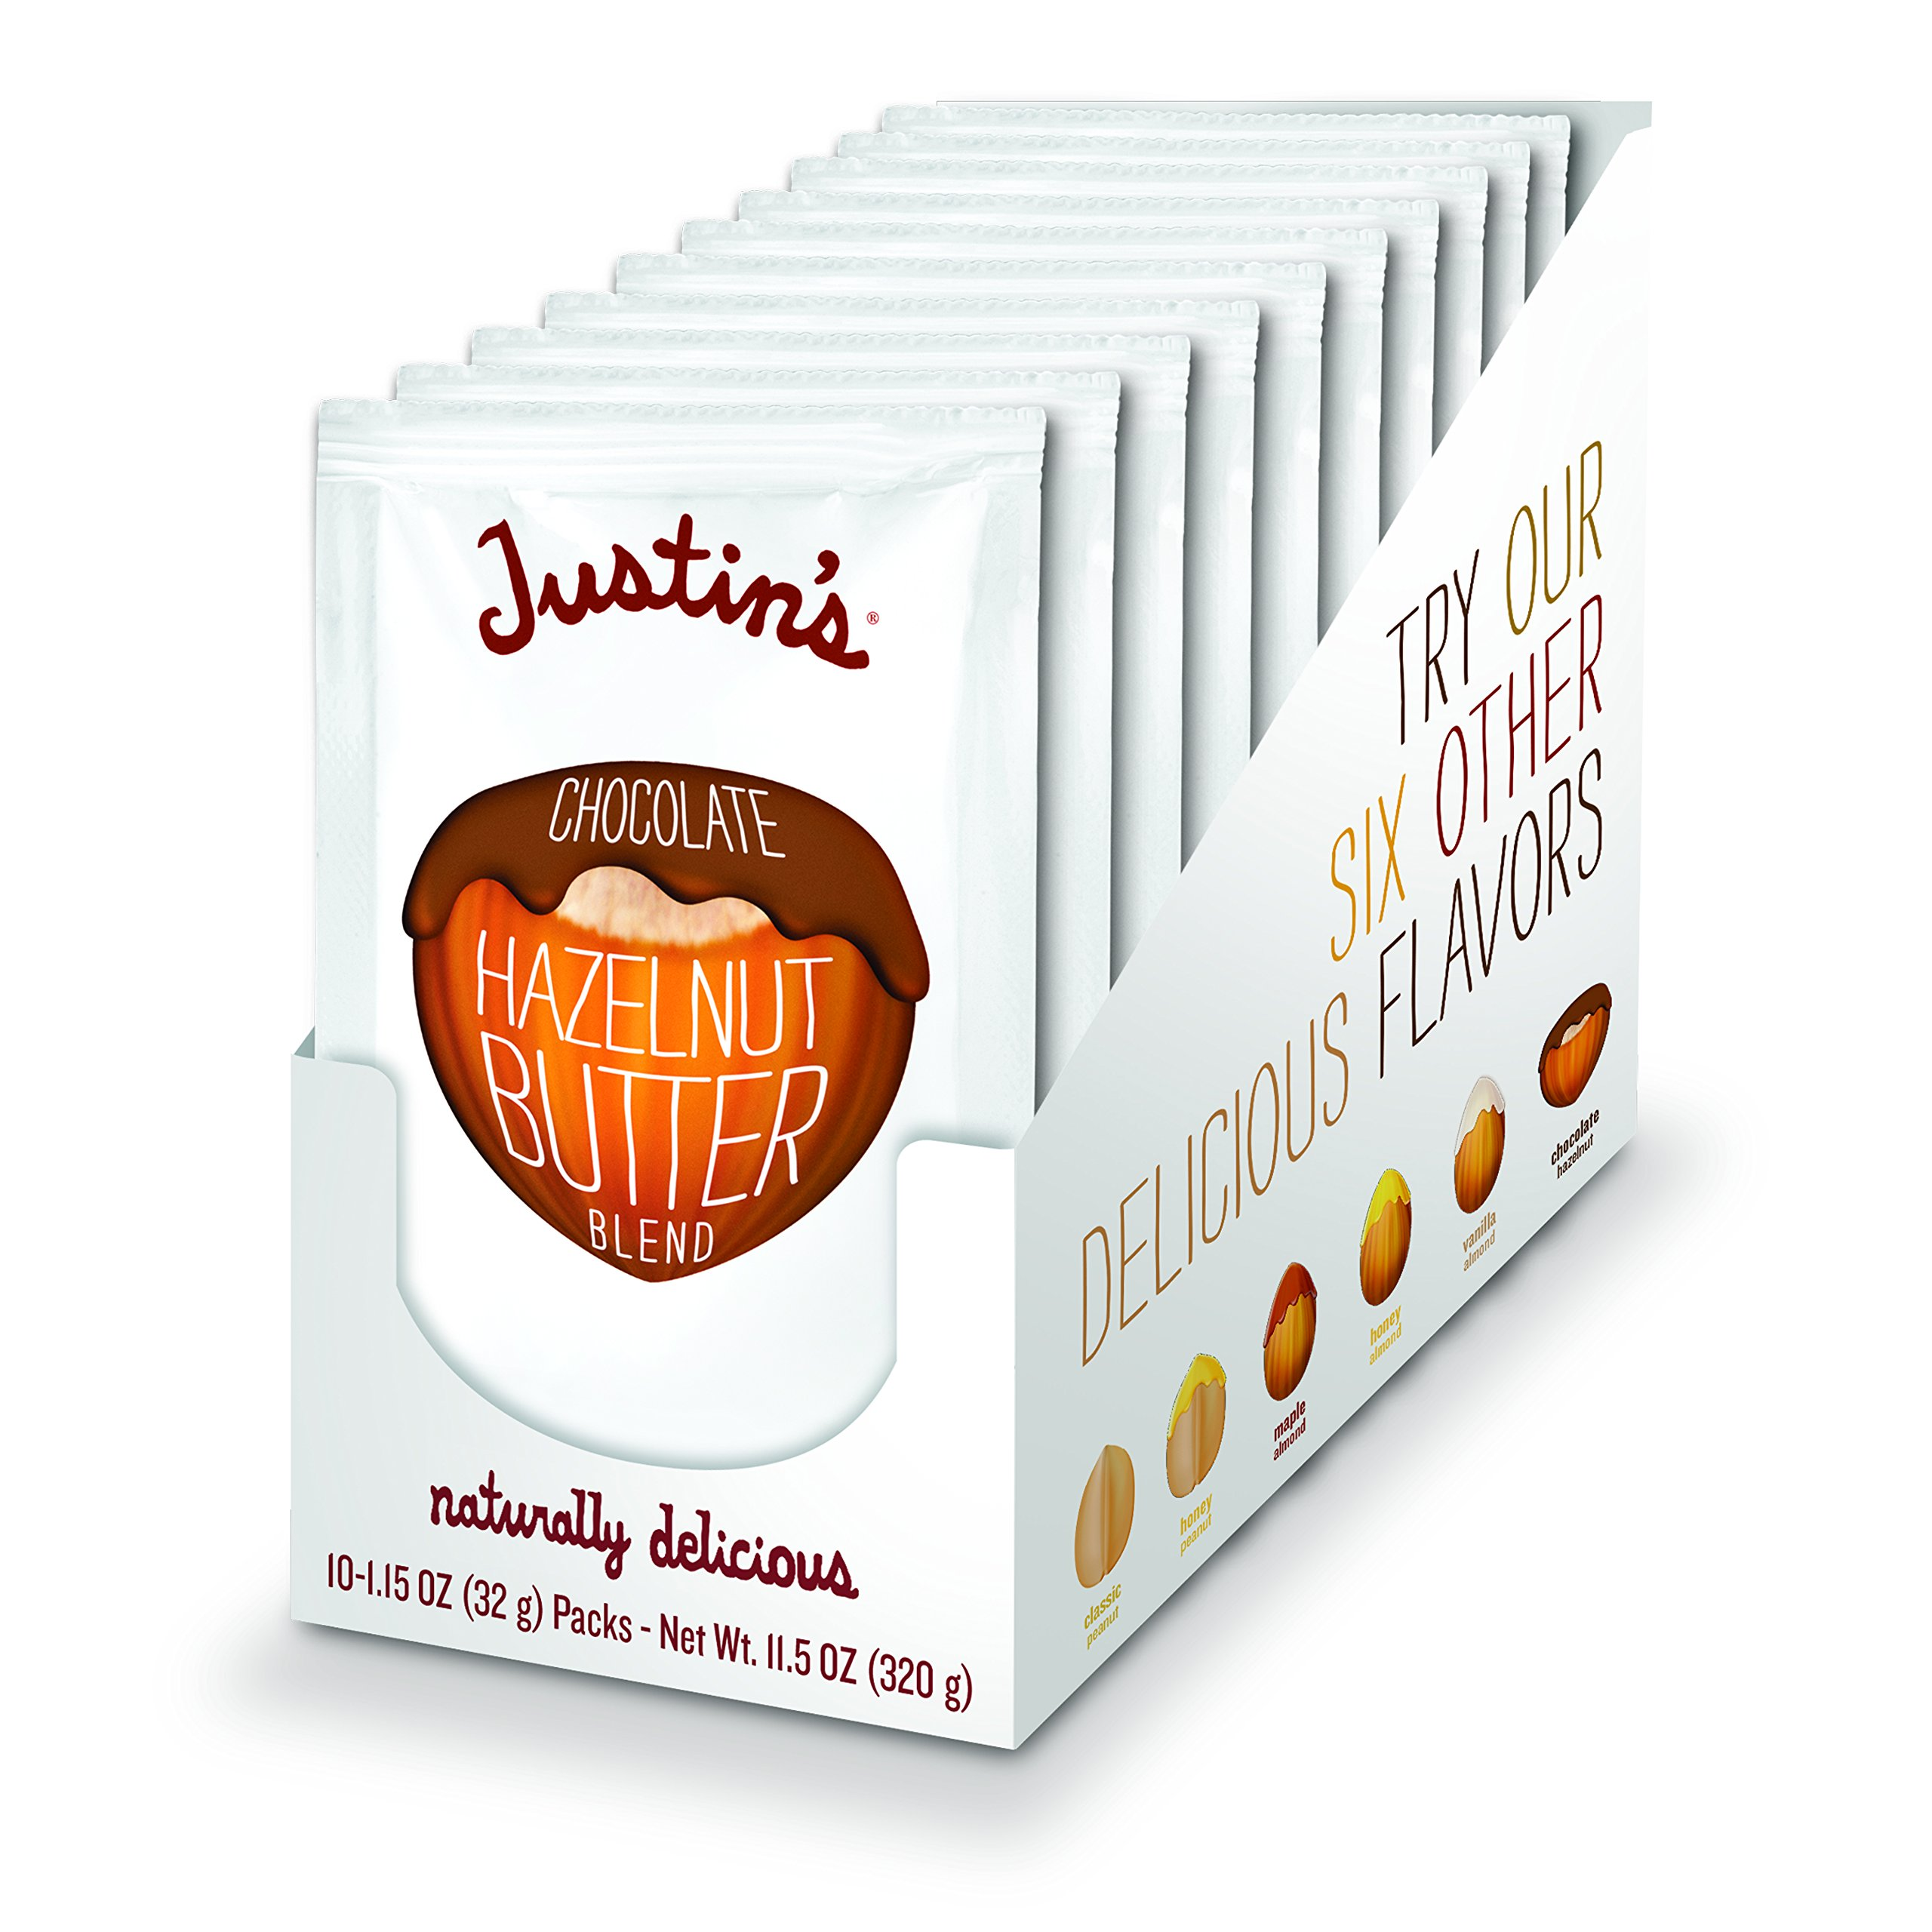 Chocolate Hazelnut Butter Squeeze Packs by Justin's, Organic Cocoa, Gluten-free, Responsibly Sourced, Pack of 10 (1.15oz each)